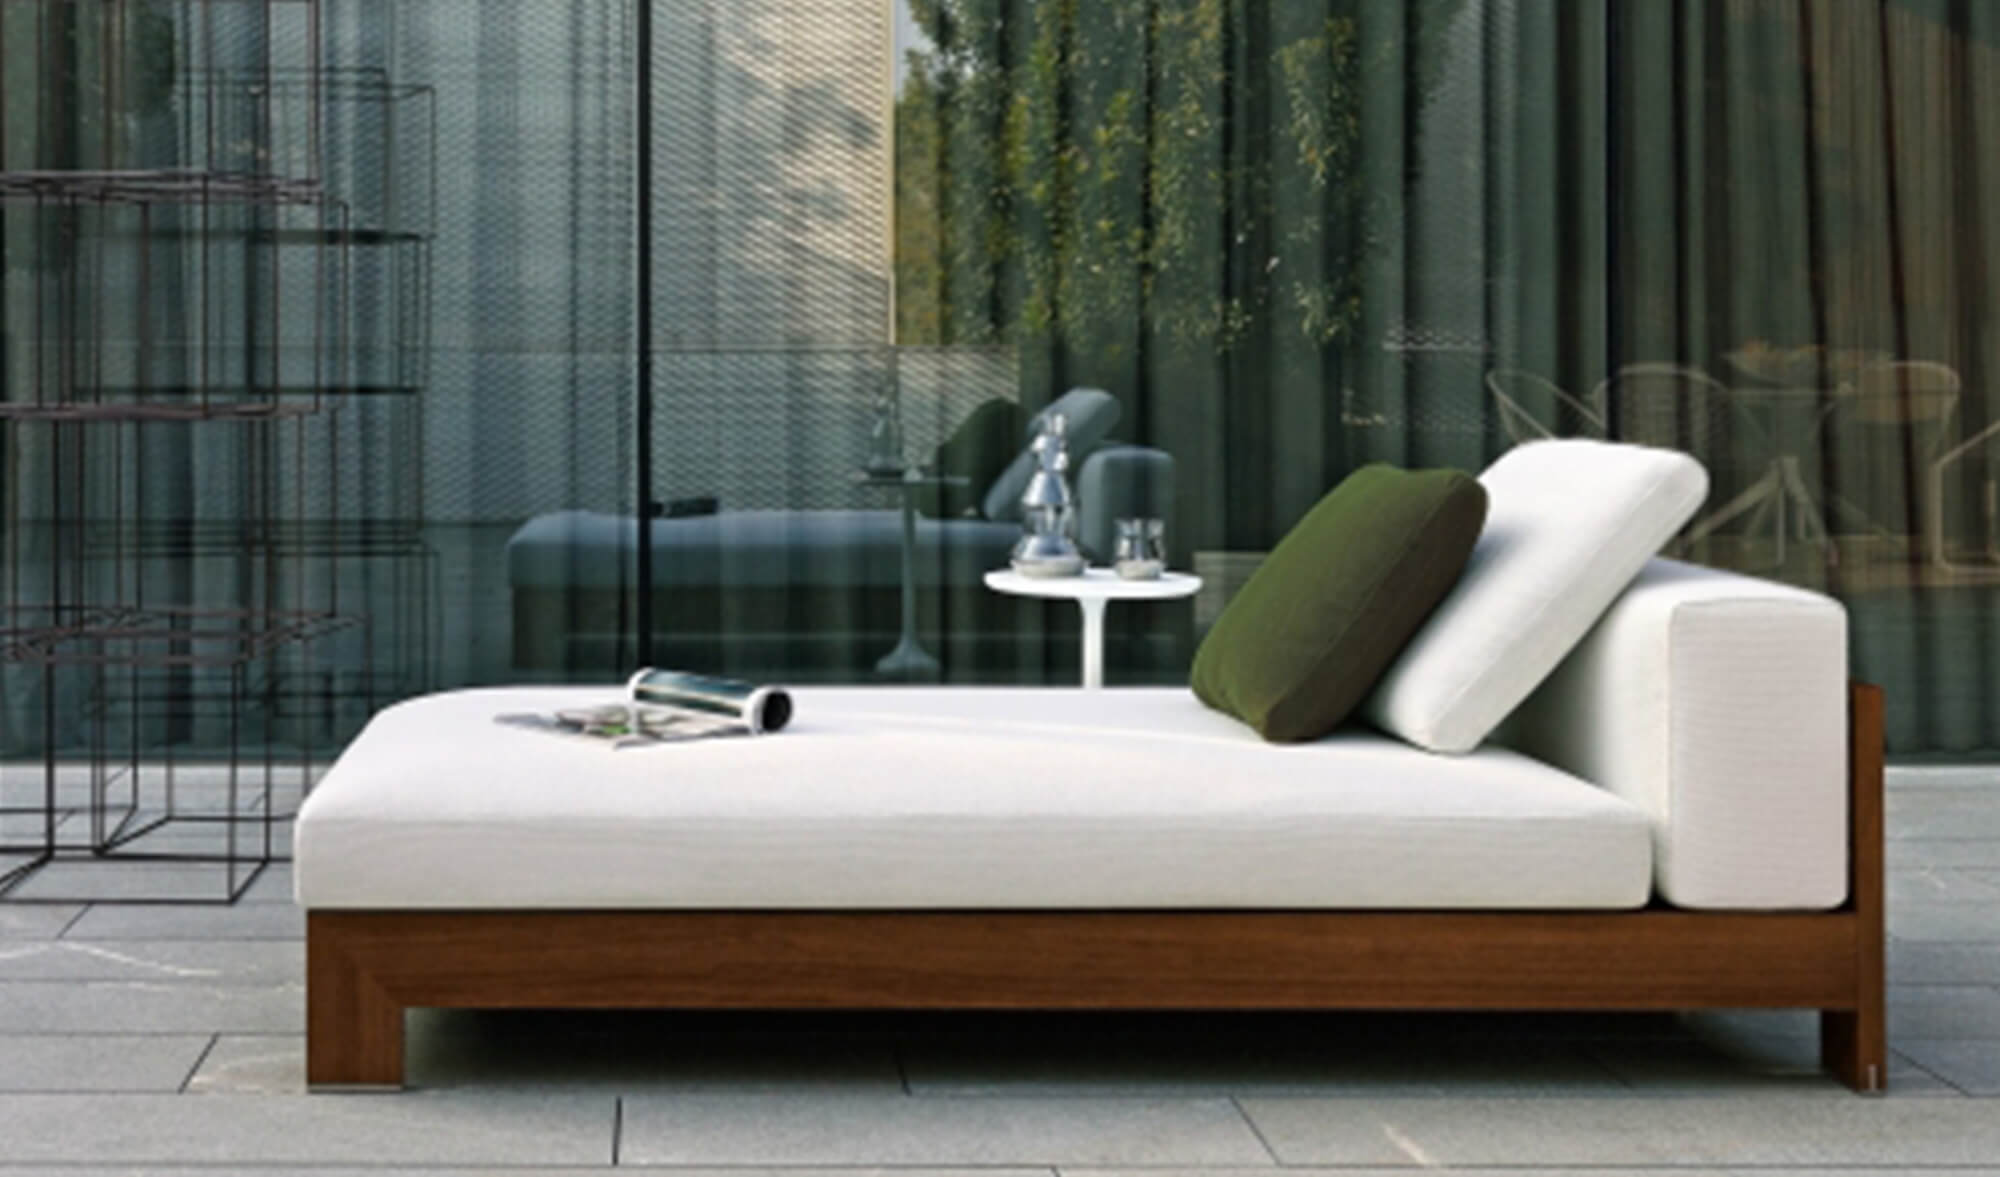 est living Get the Look Entertaining Outdoors Alison Iroko Outdoor Minotti Sofa